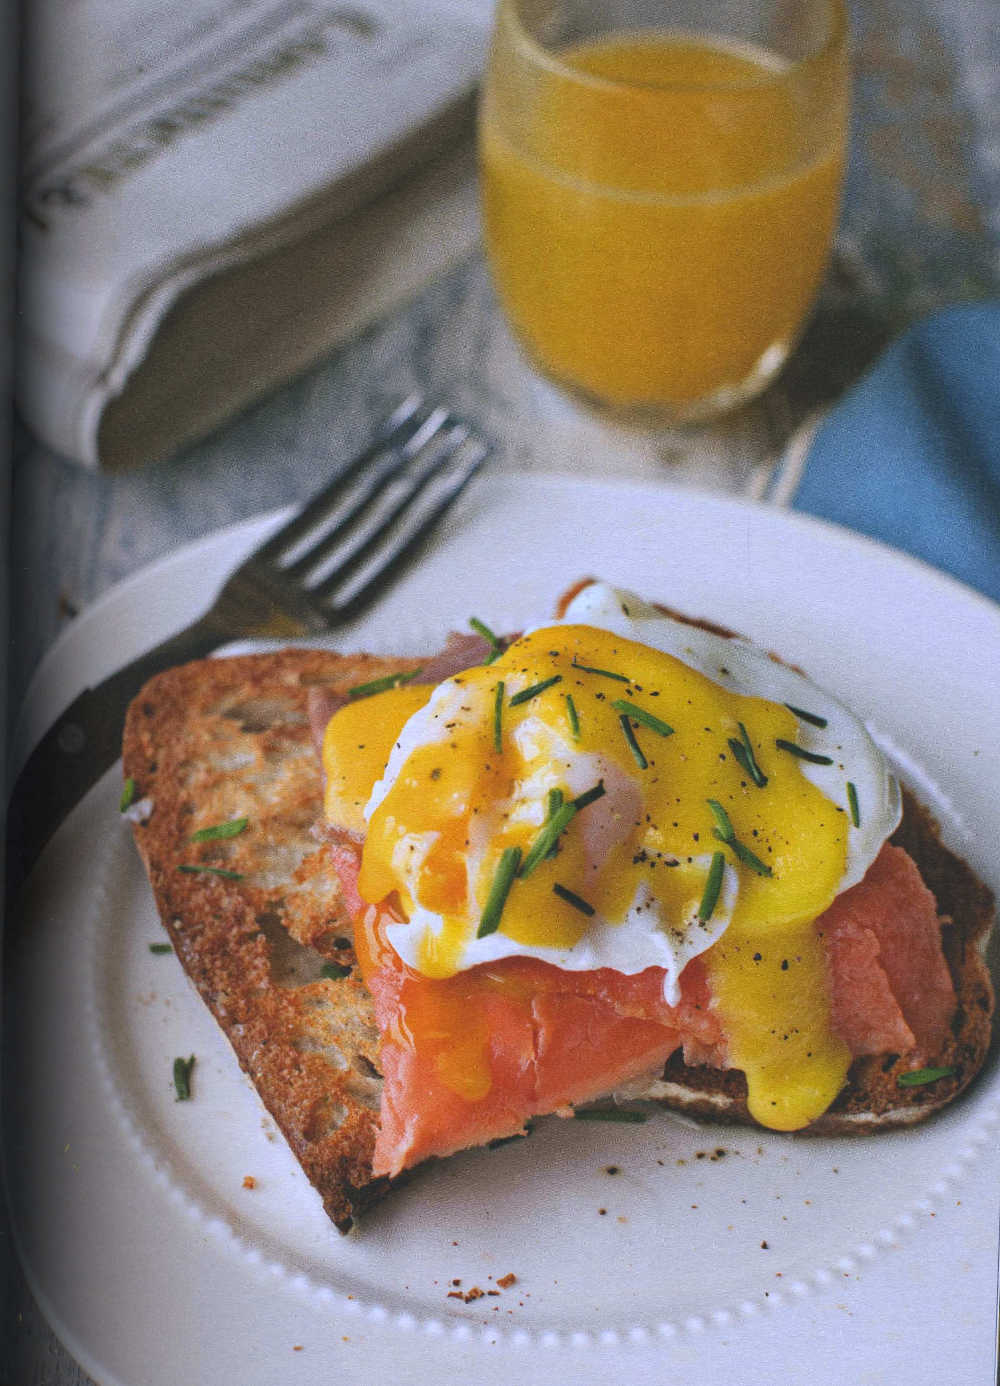 Smoked Trout with Poached Eggs & Hollandaise Sauce